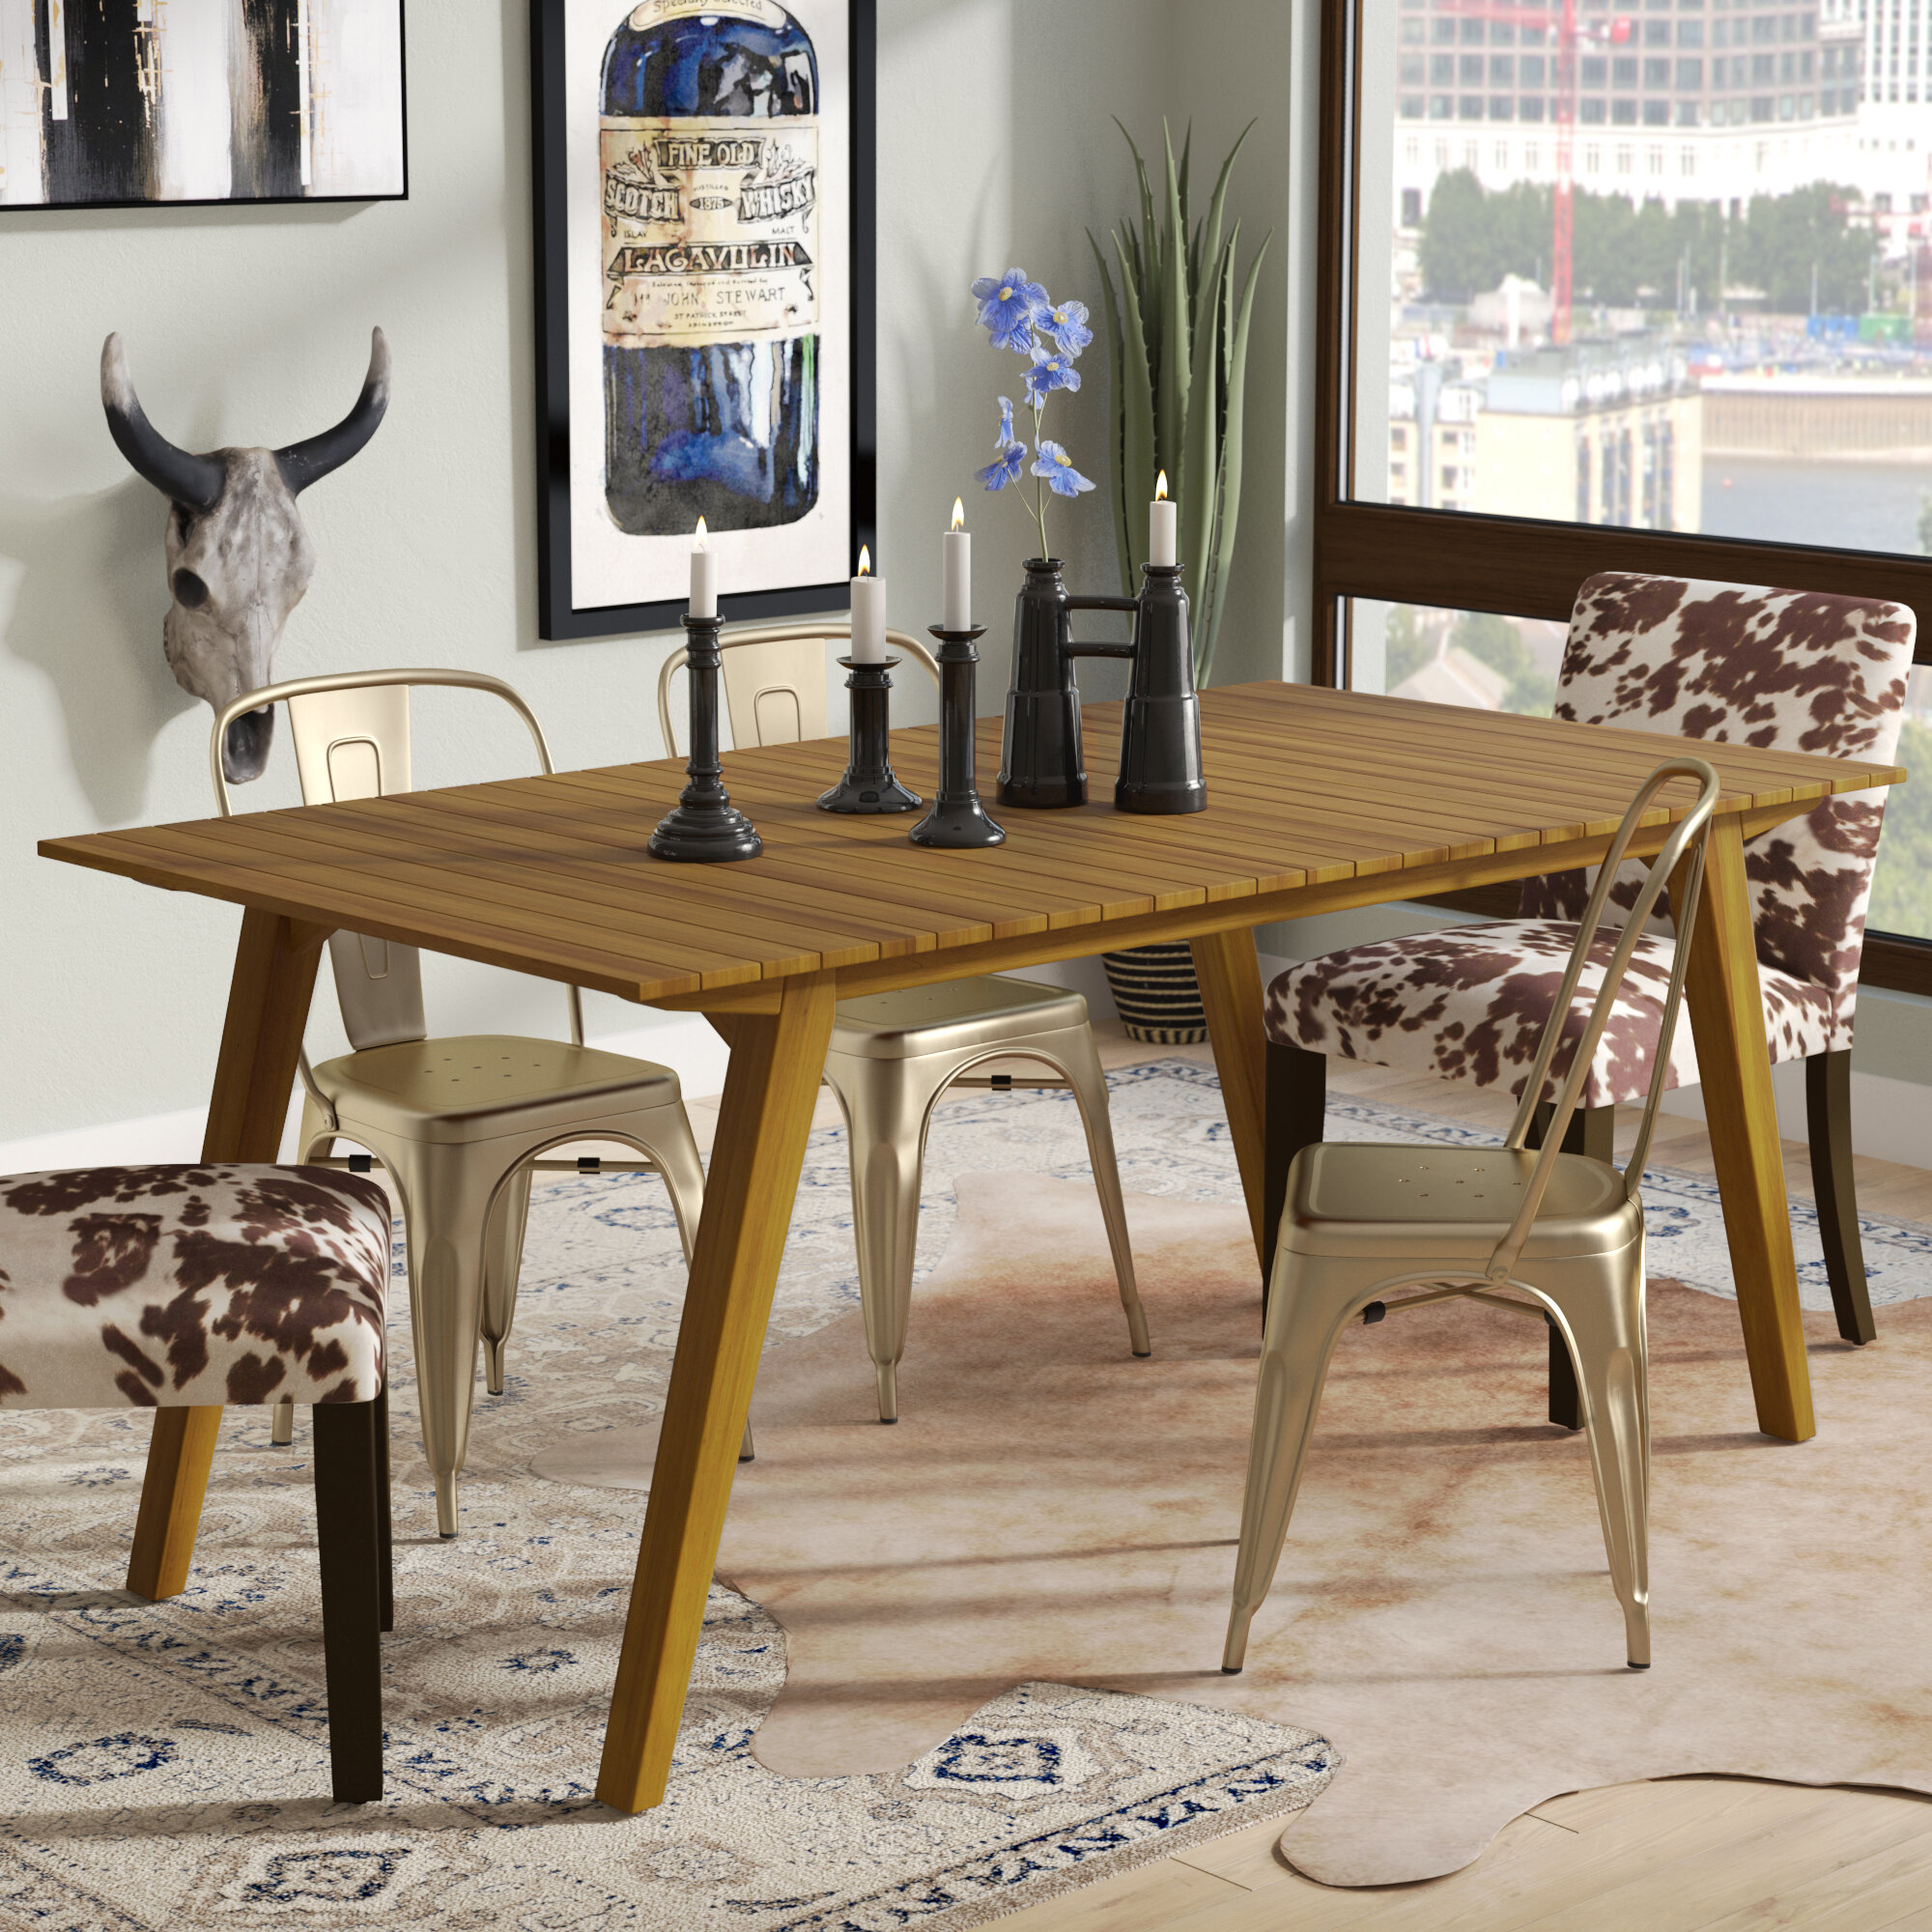 Charmant Lindo Rustic Wood Dining Table